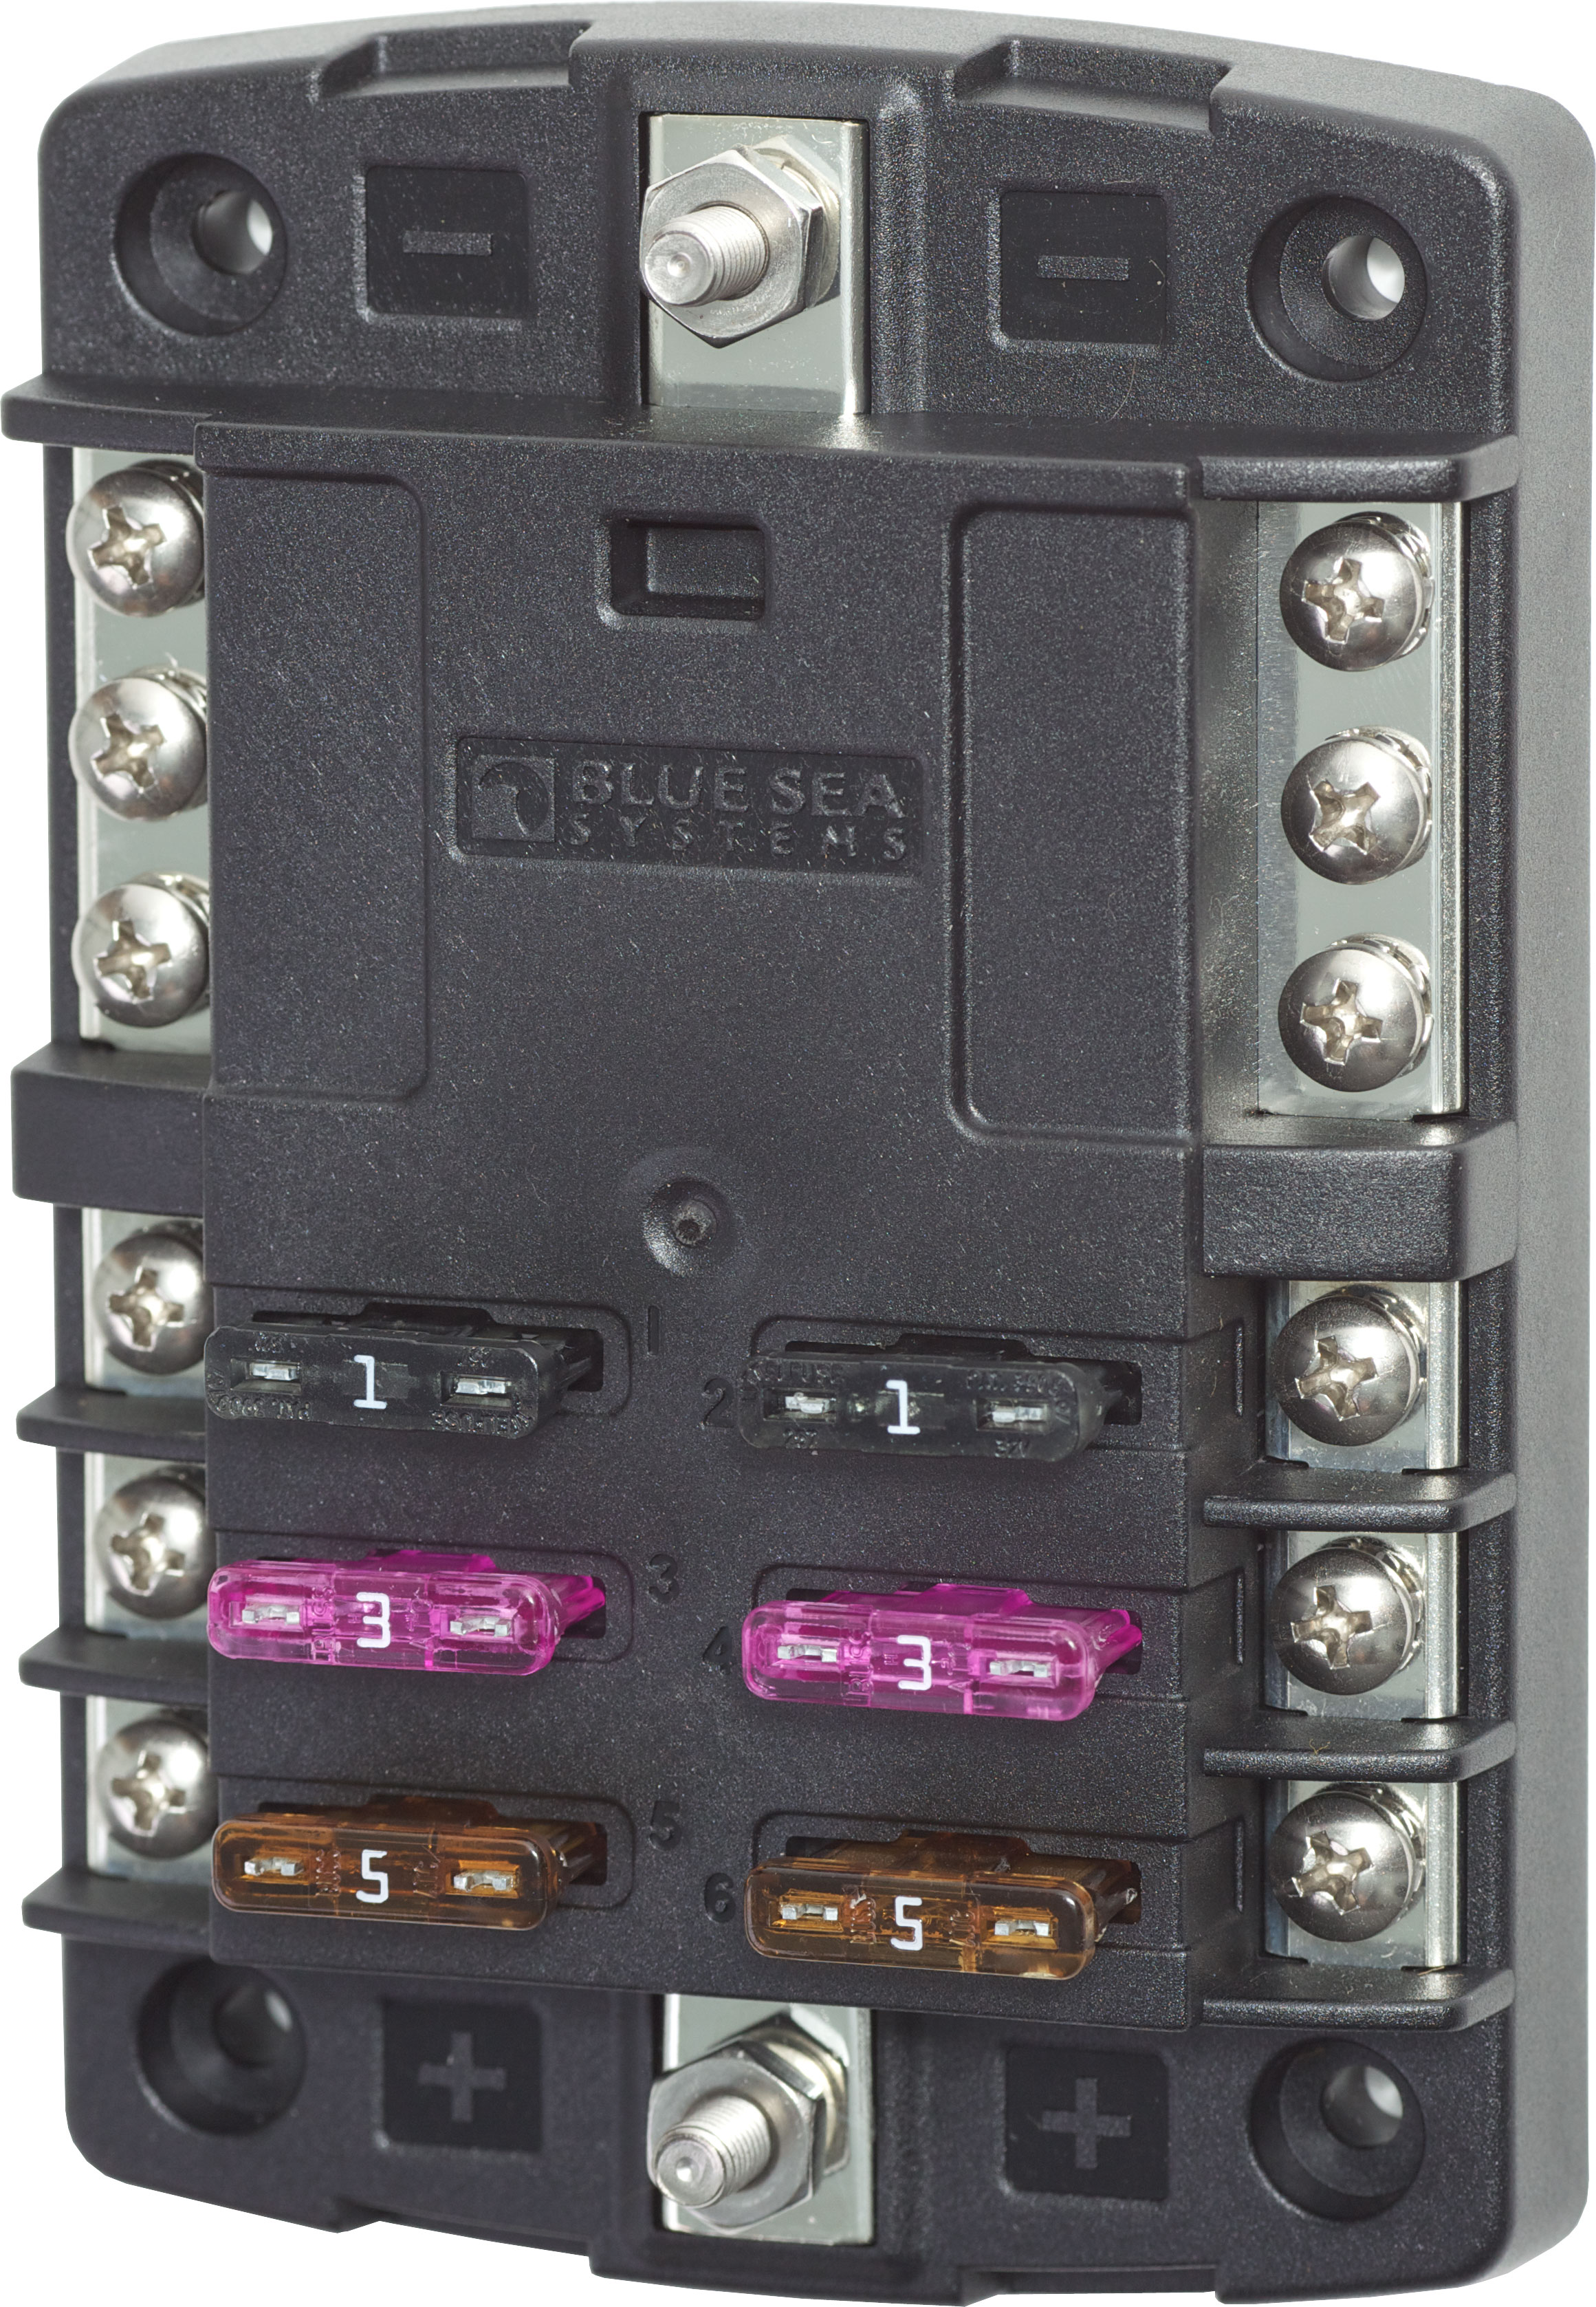 st blade fuse block 6 circuits negative bus blue sea systems product image